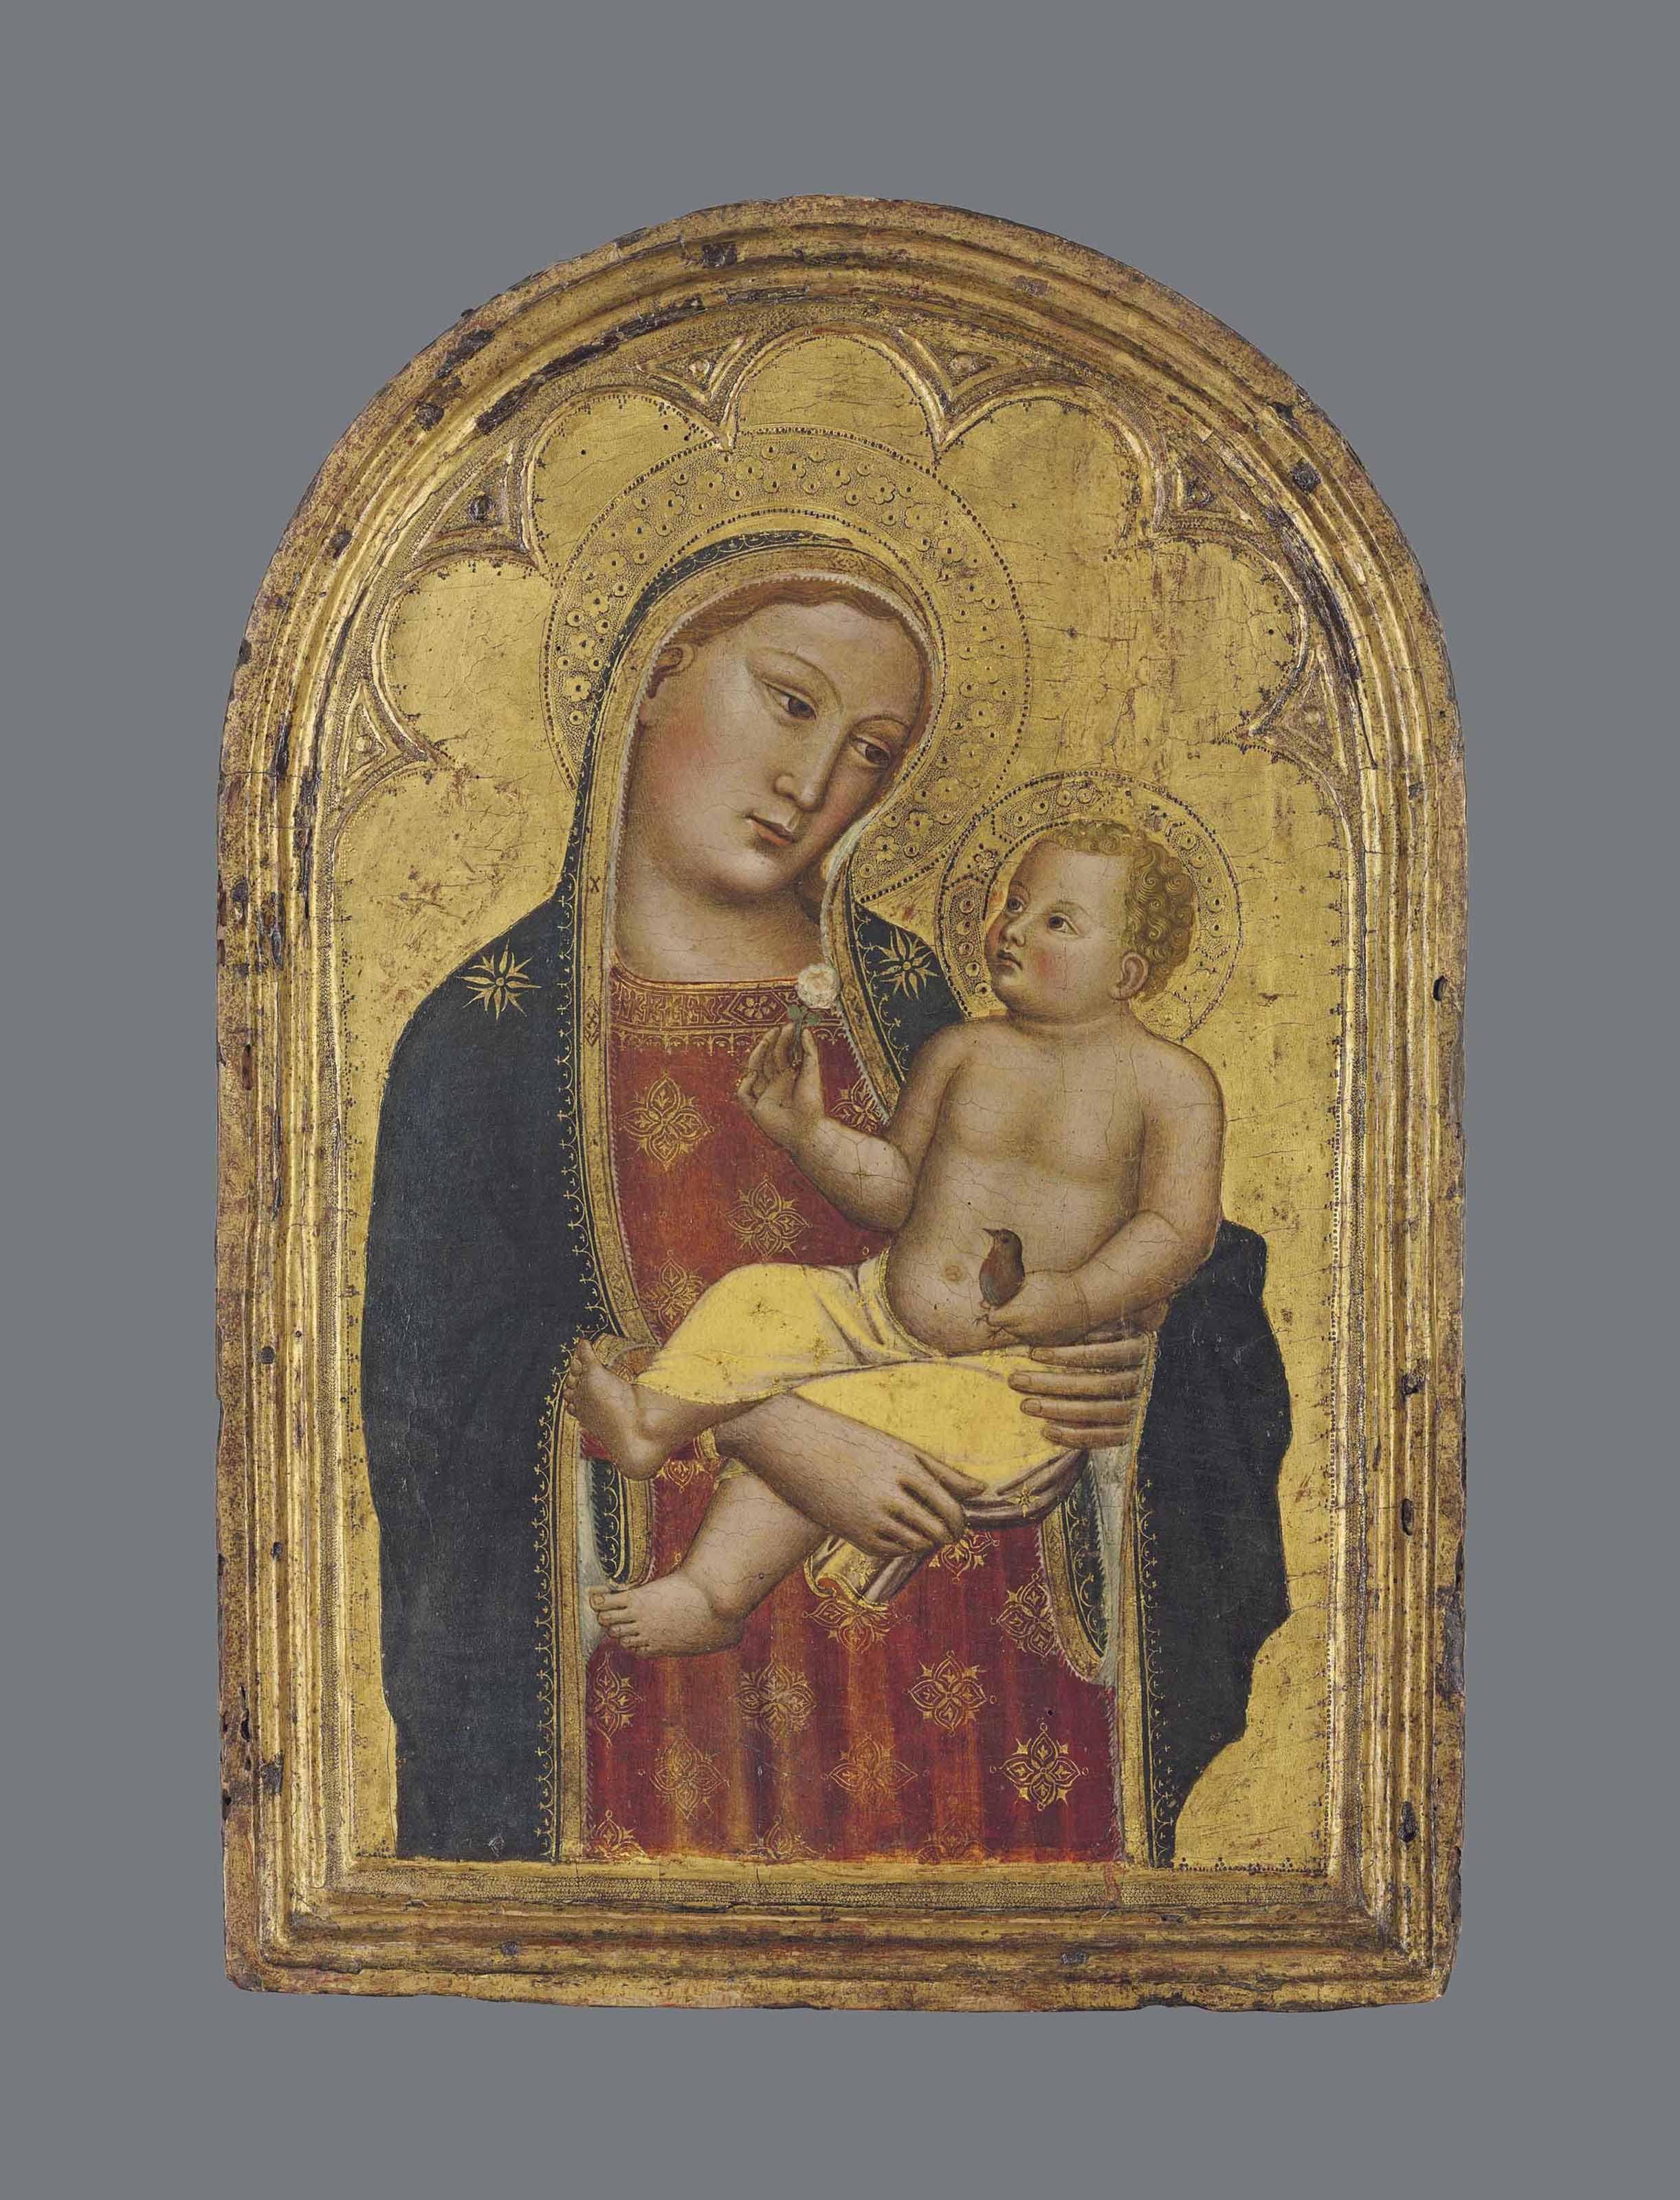 The Madonna and Child with a goldfinch